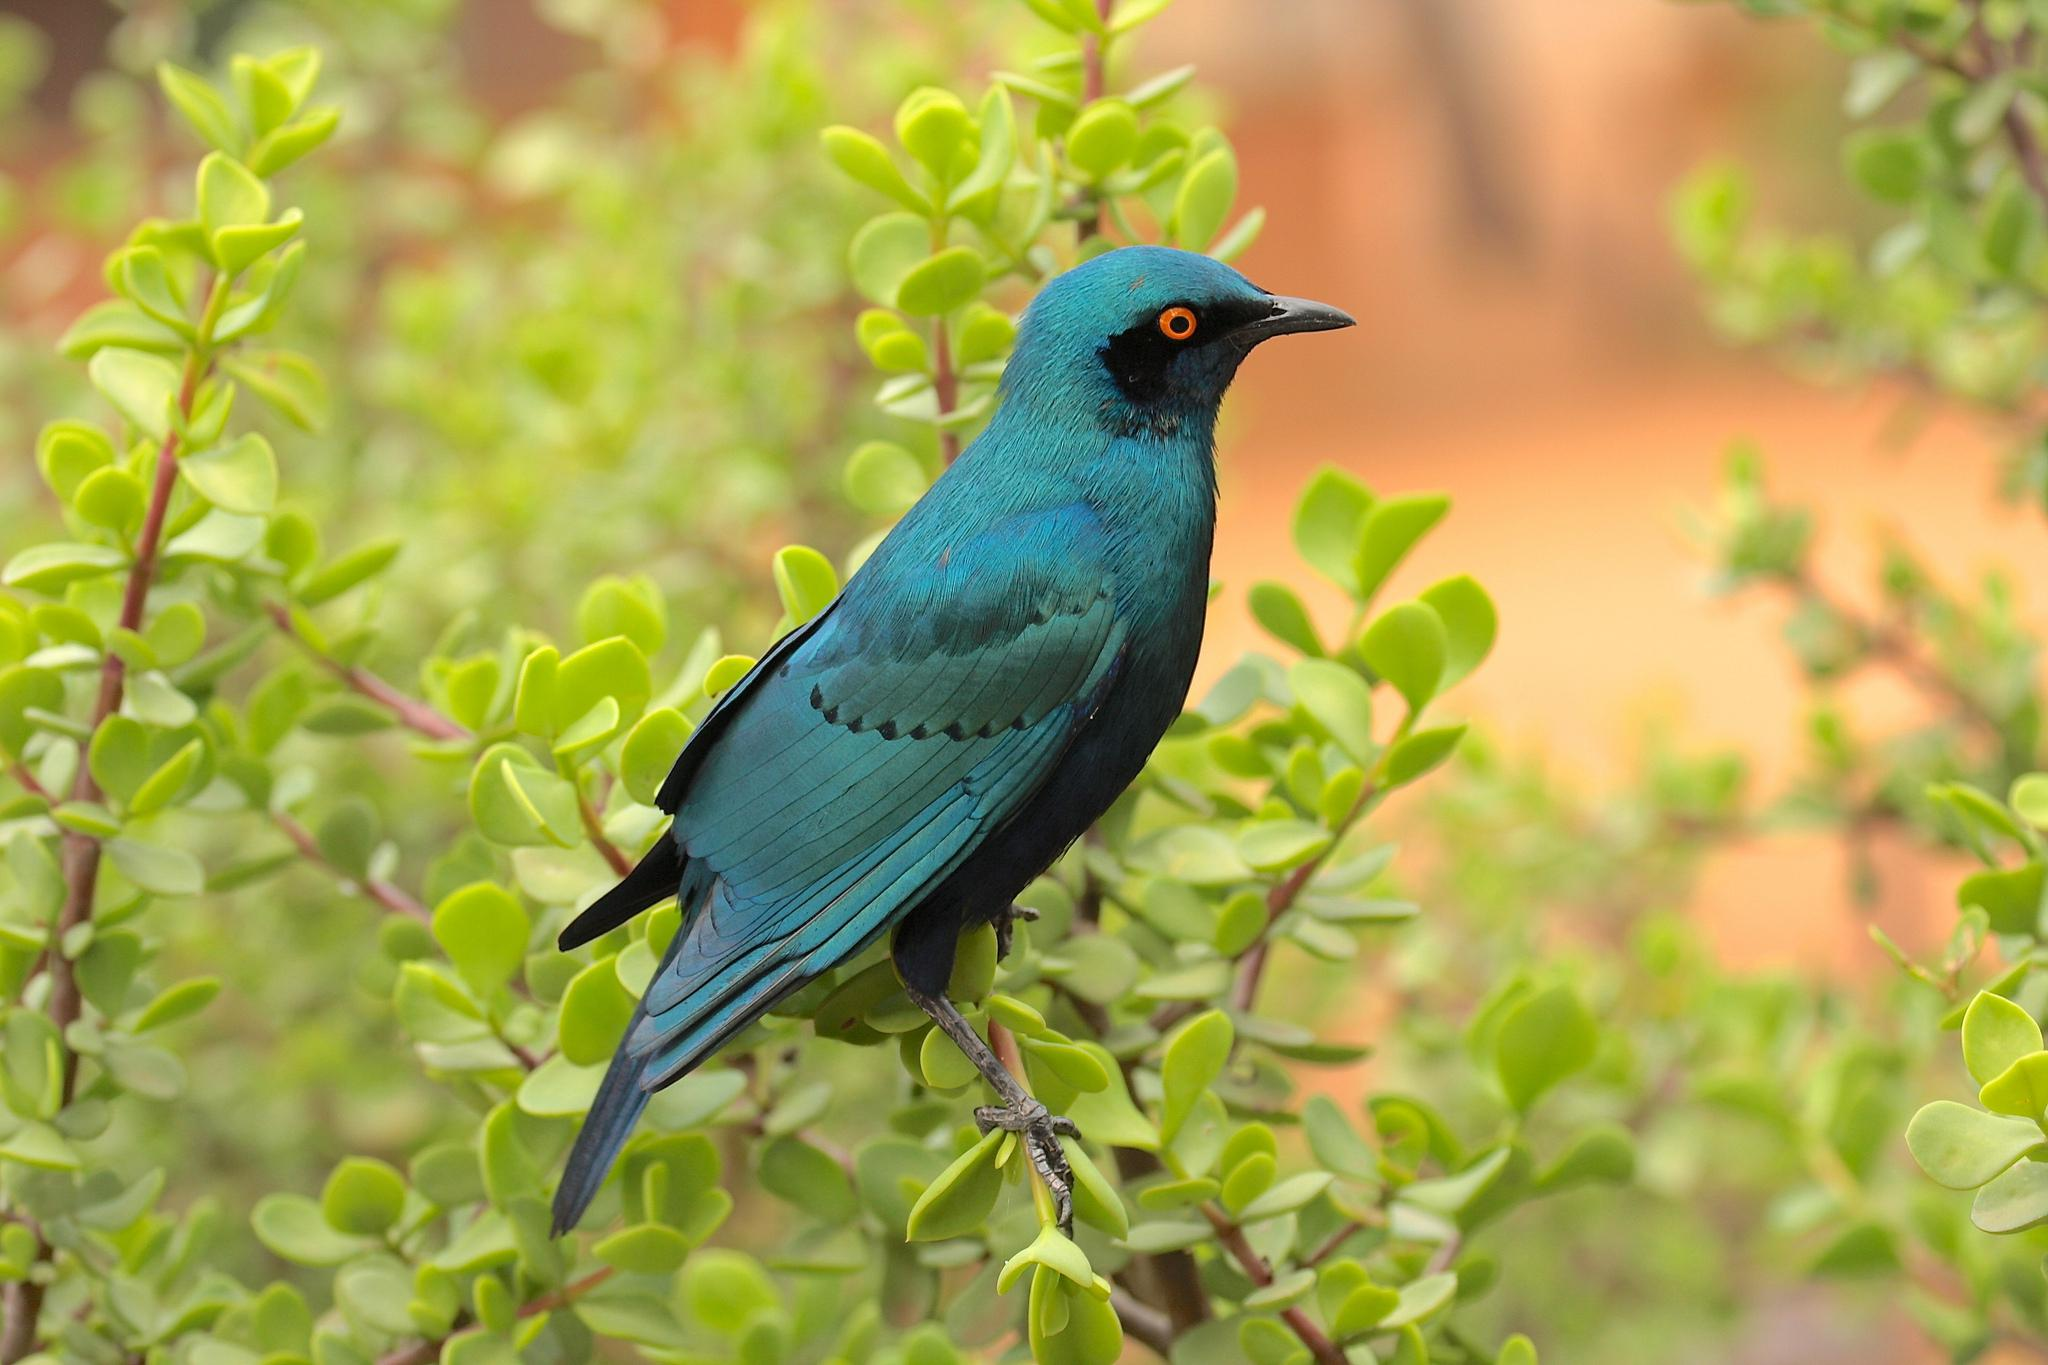 blue bird   128309   High Quality and Resolution Wallpapers on 2048x1365